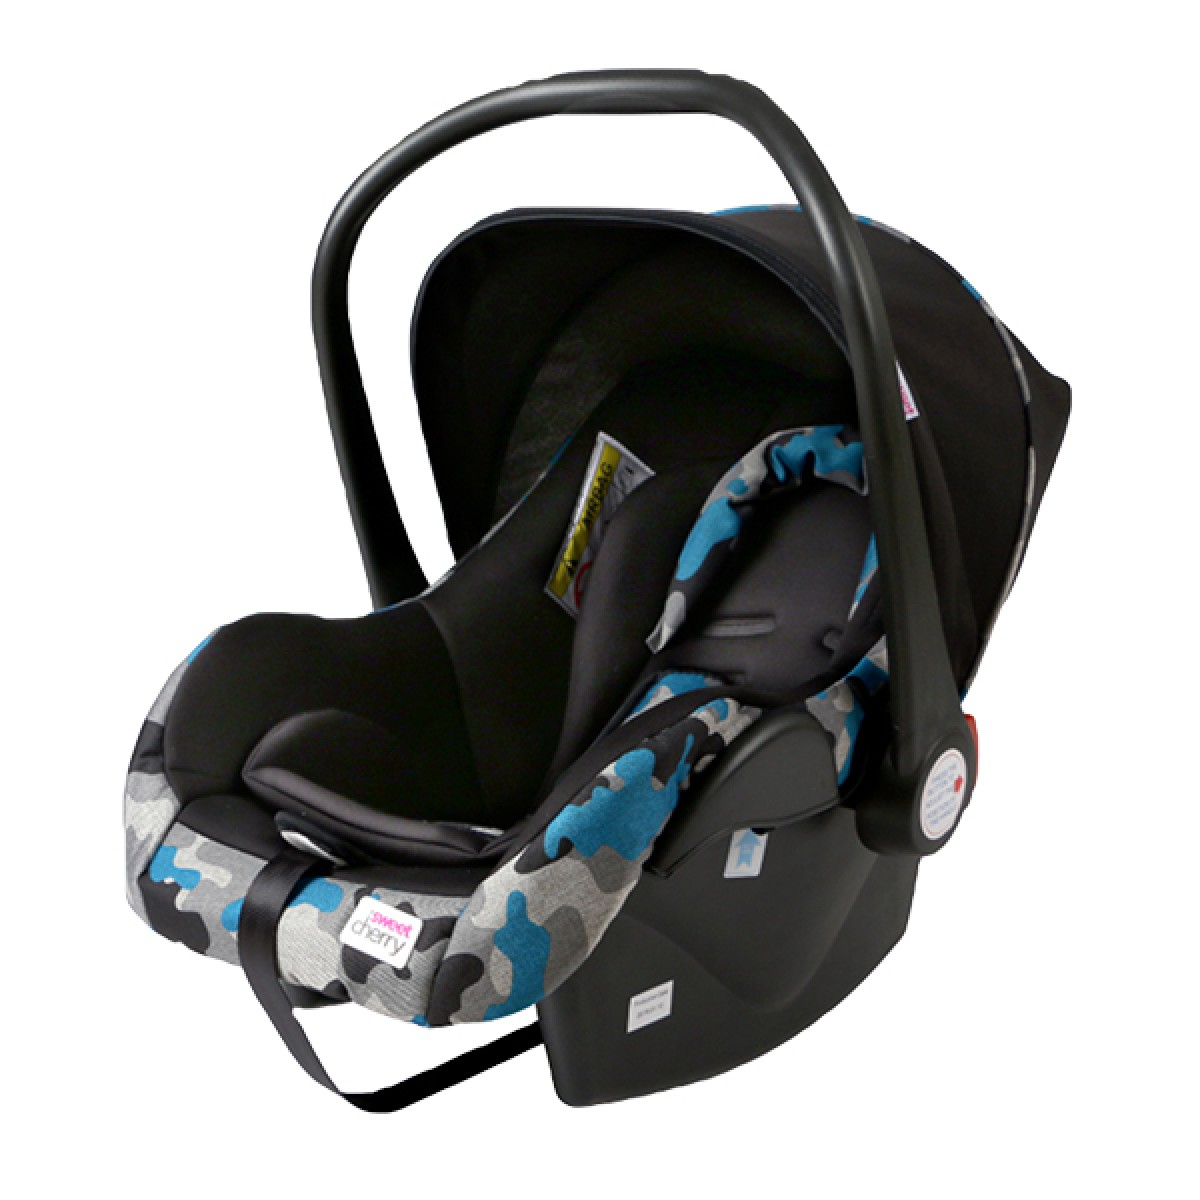 Fuji Carrier Carseat - Kico Baby Center